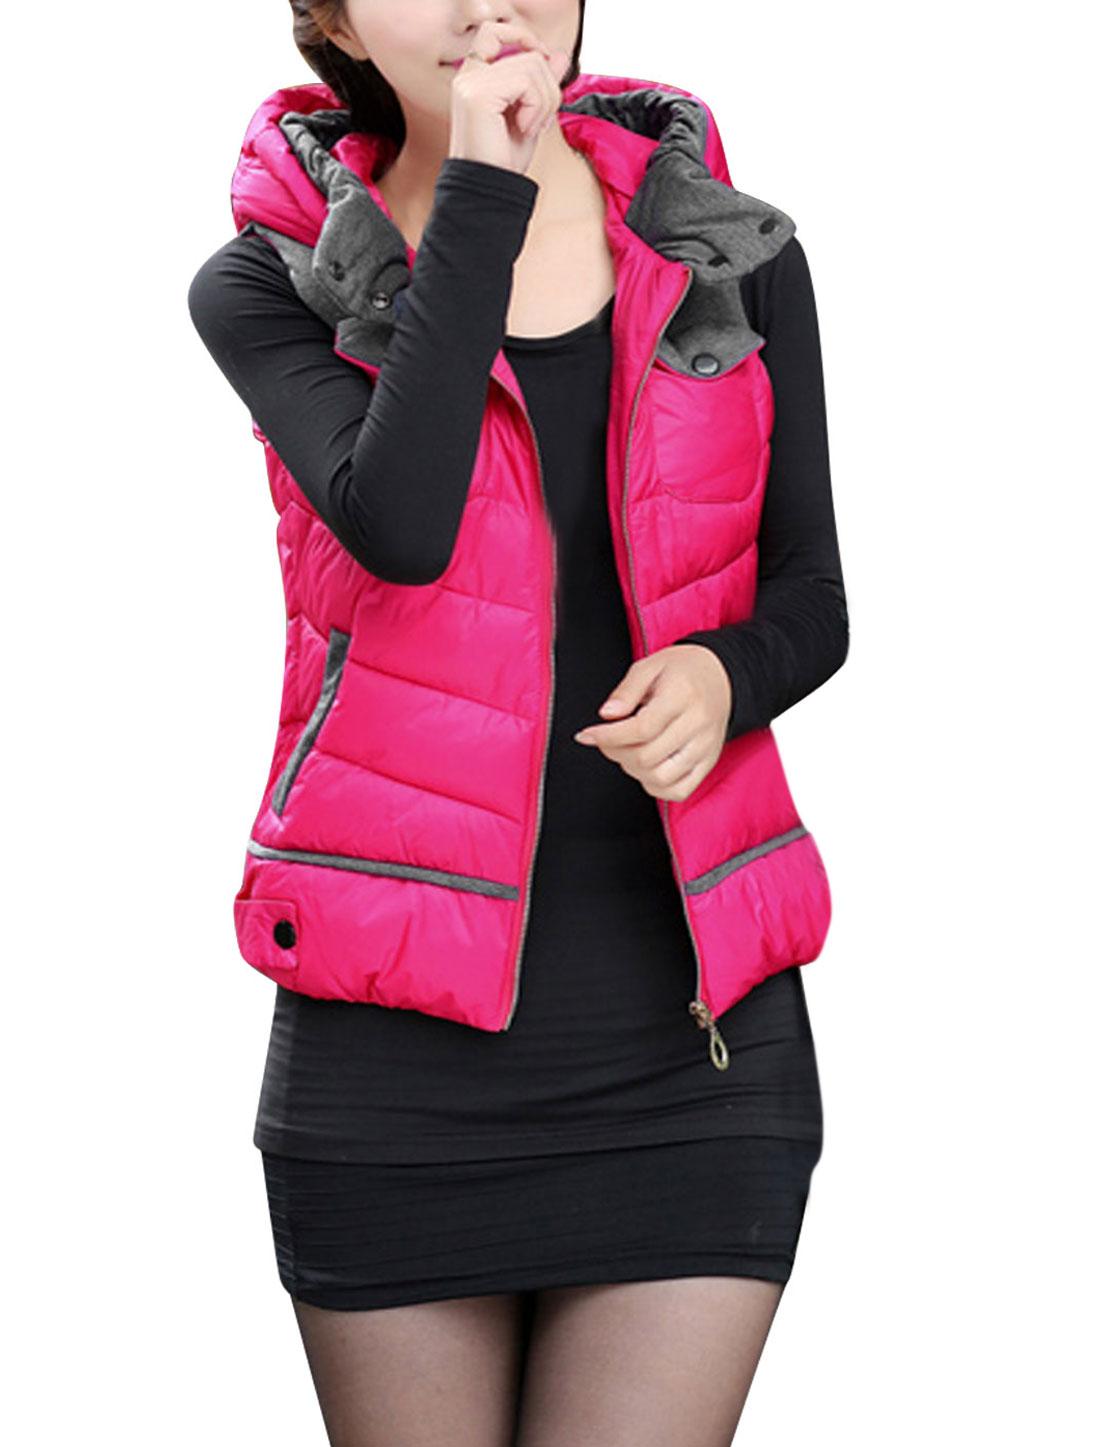 Women Fashion Style Snap Buttons Zip Up Hooded Gilet Fuchsia L